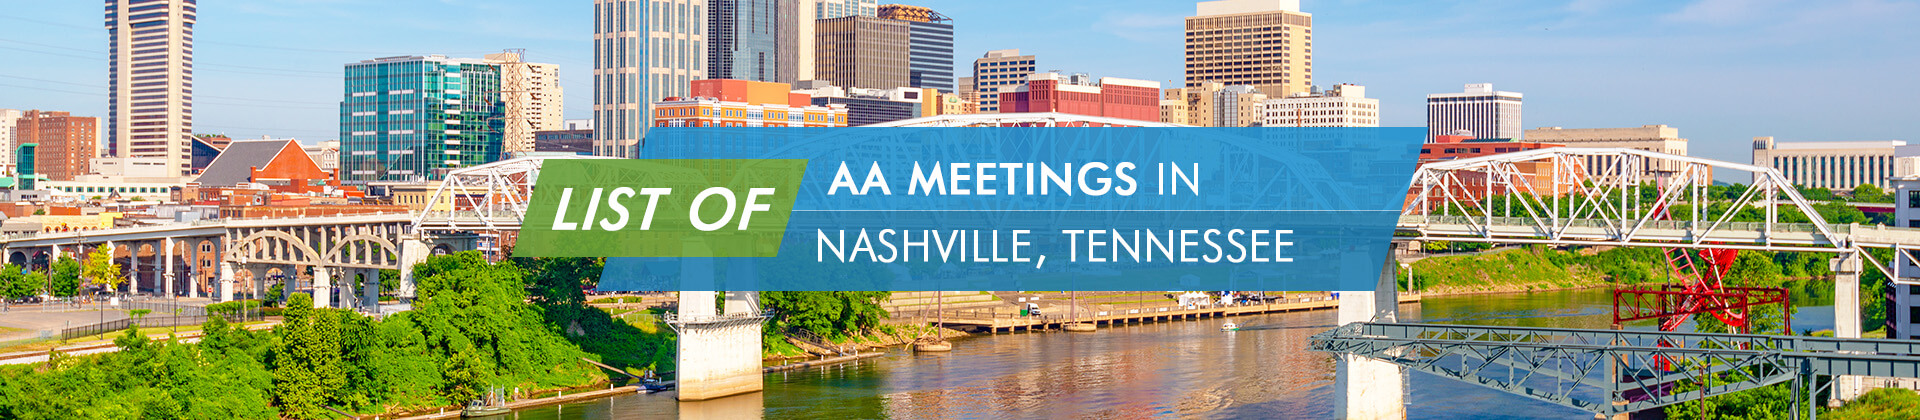 AA Meetings Nashville Tennessee